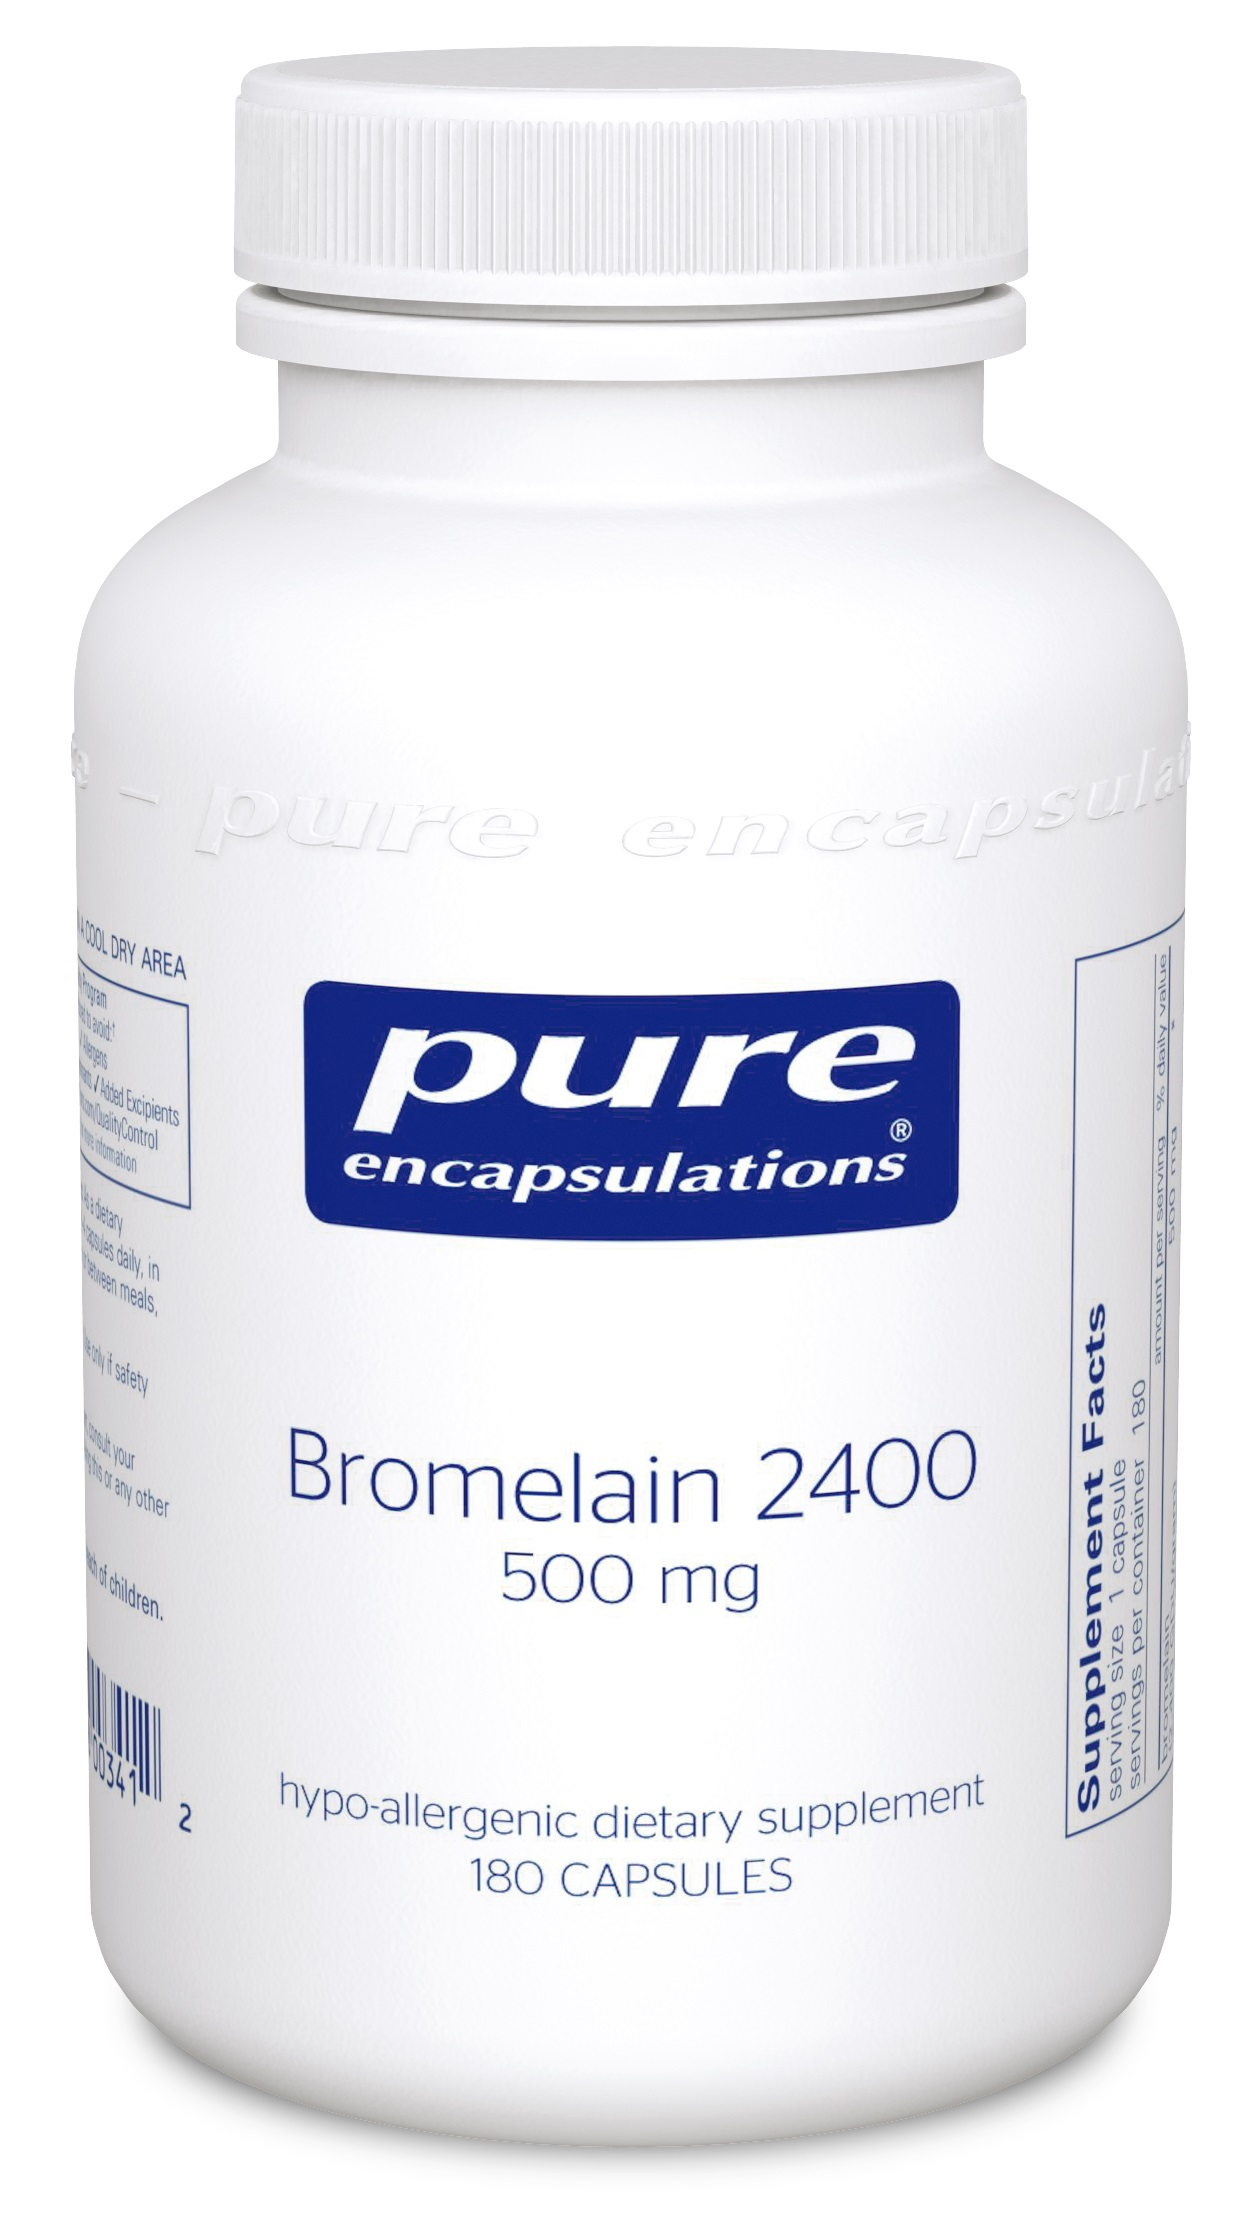 Pure Encapsulations Bromelain 2400 500 mg